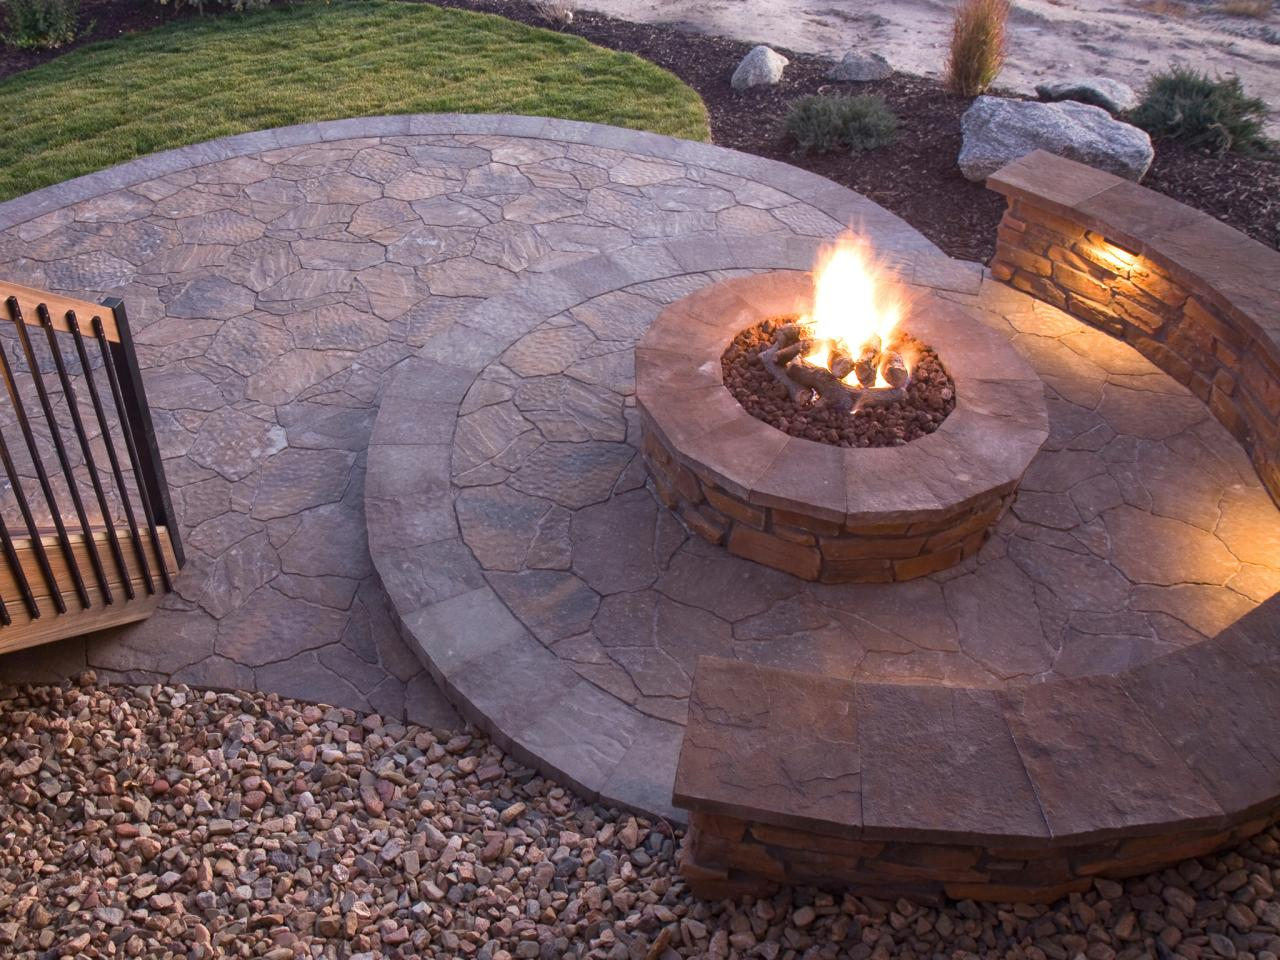 How to plan for building a fire pit hgtv for Brick fire pit construction